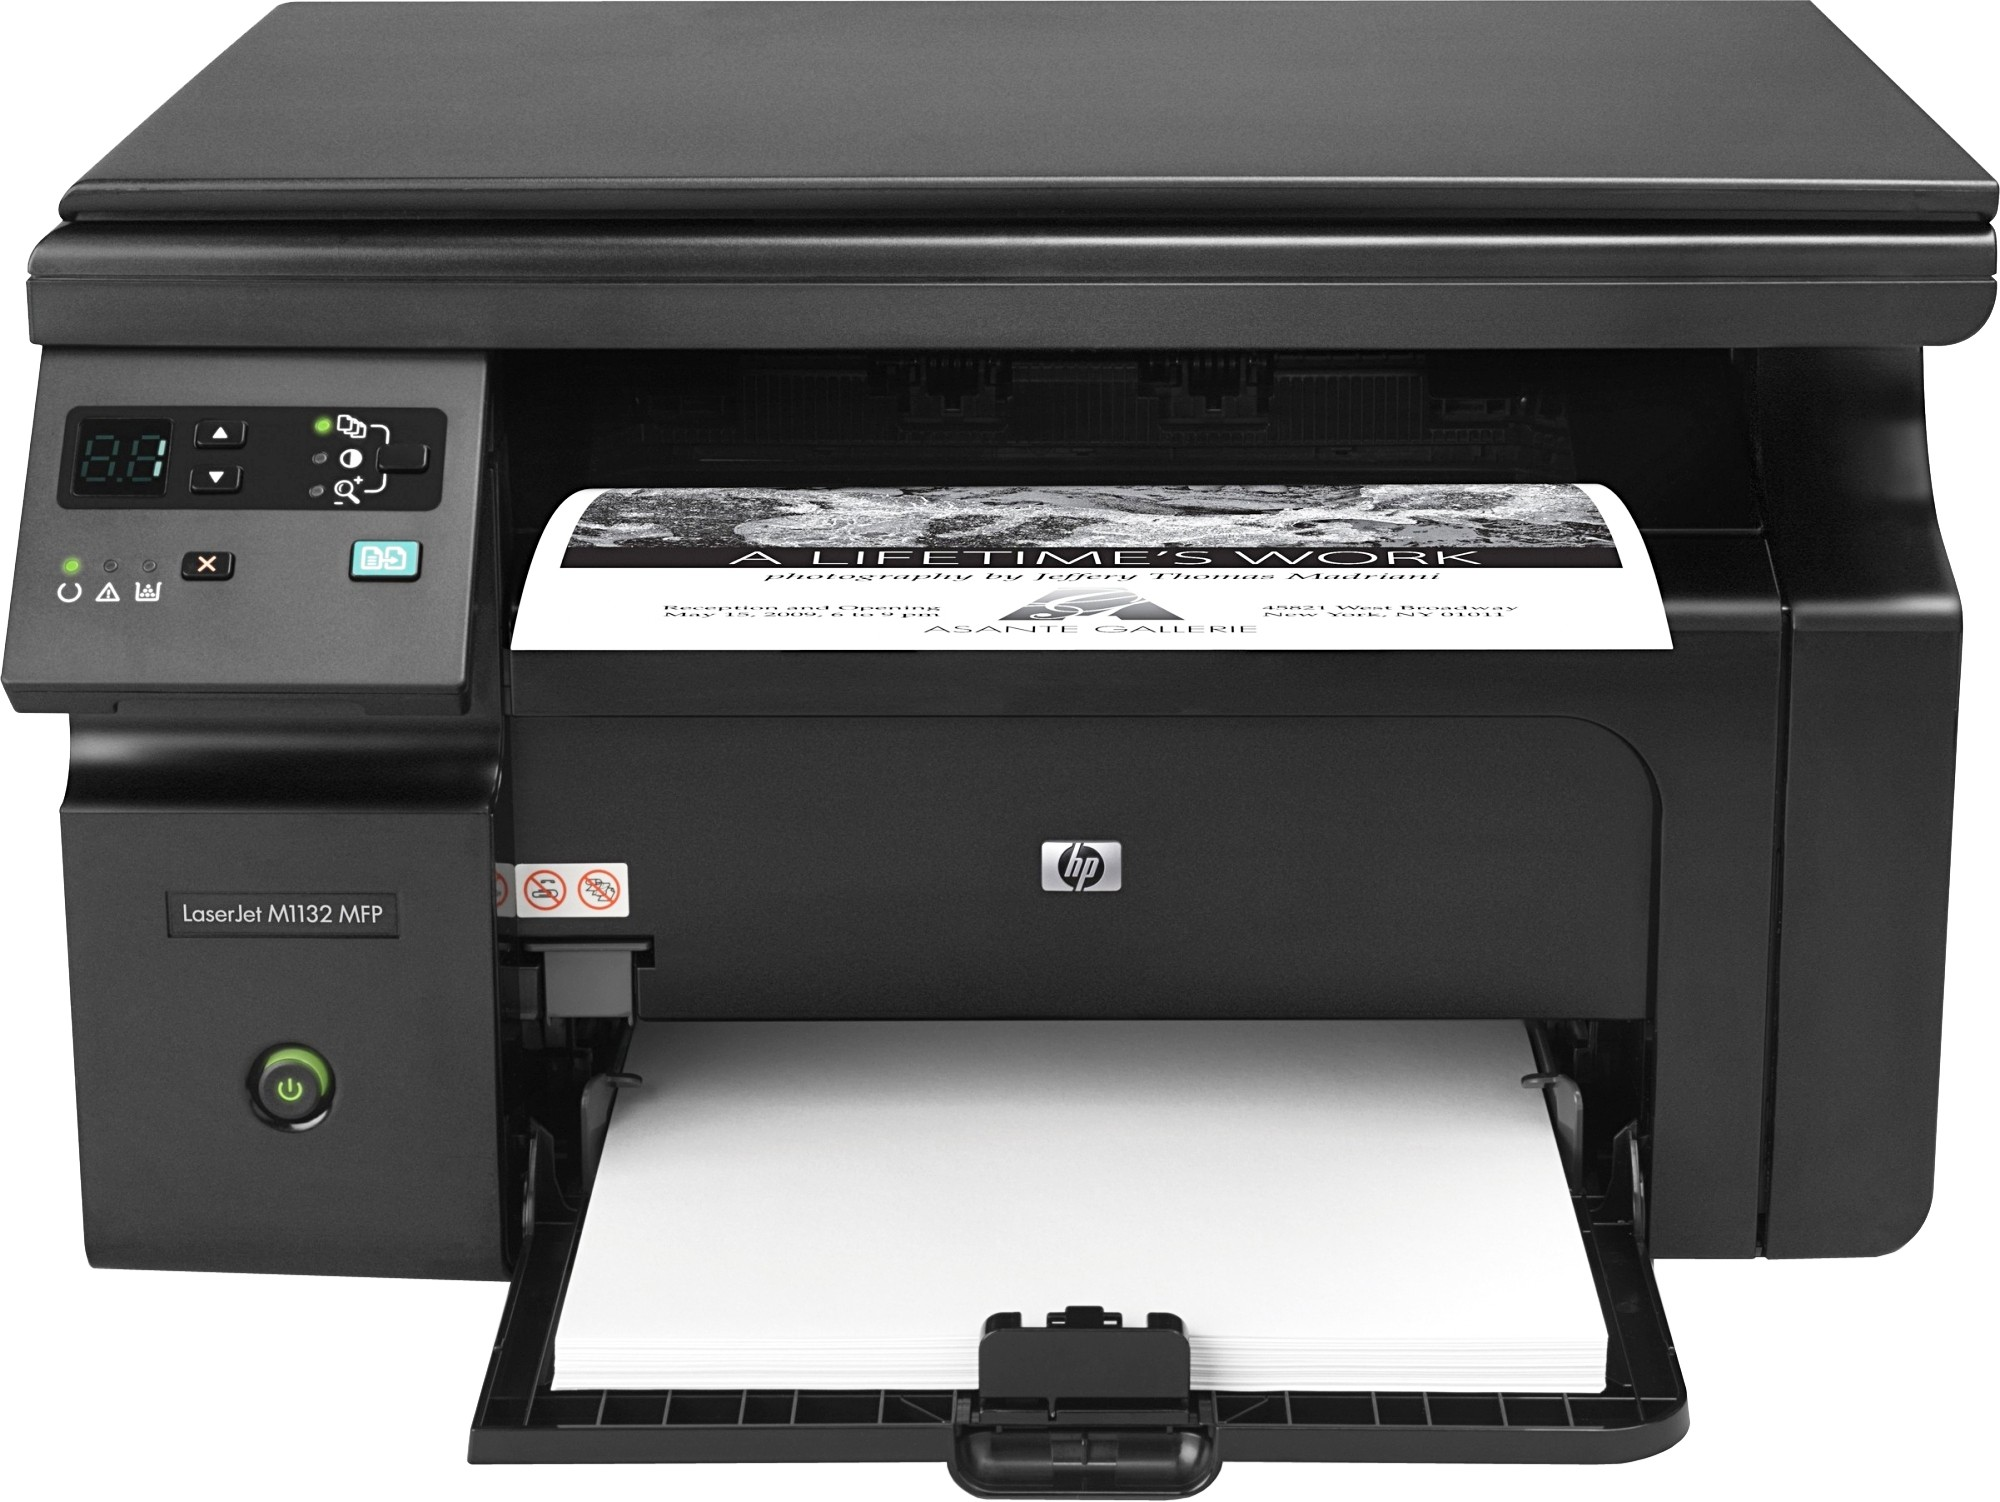 Принтер HP LaserJet Pro M1132 Multifunction Printer